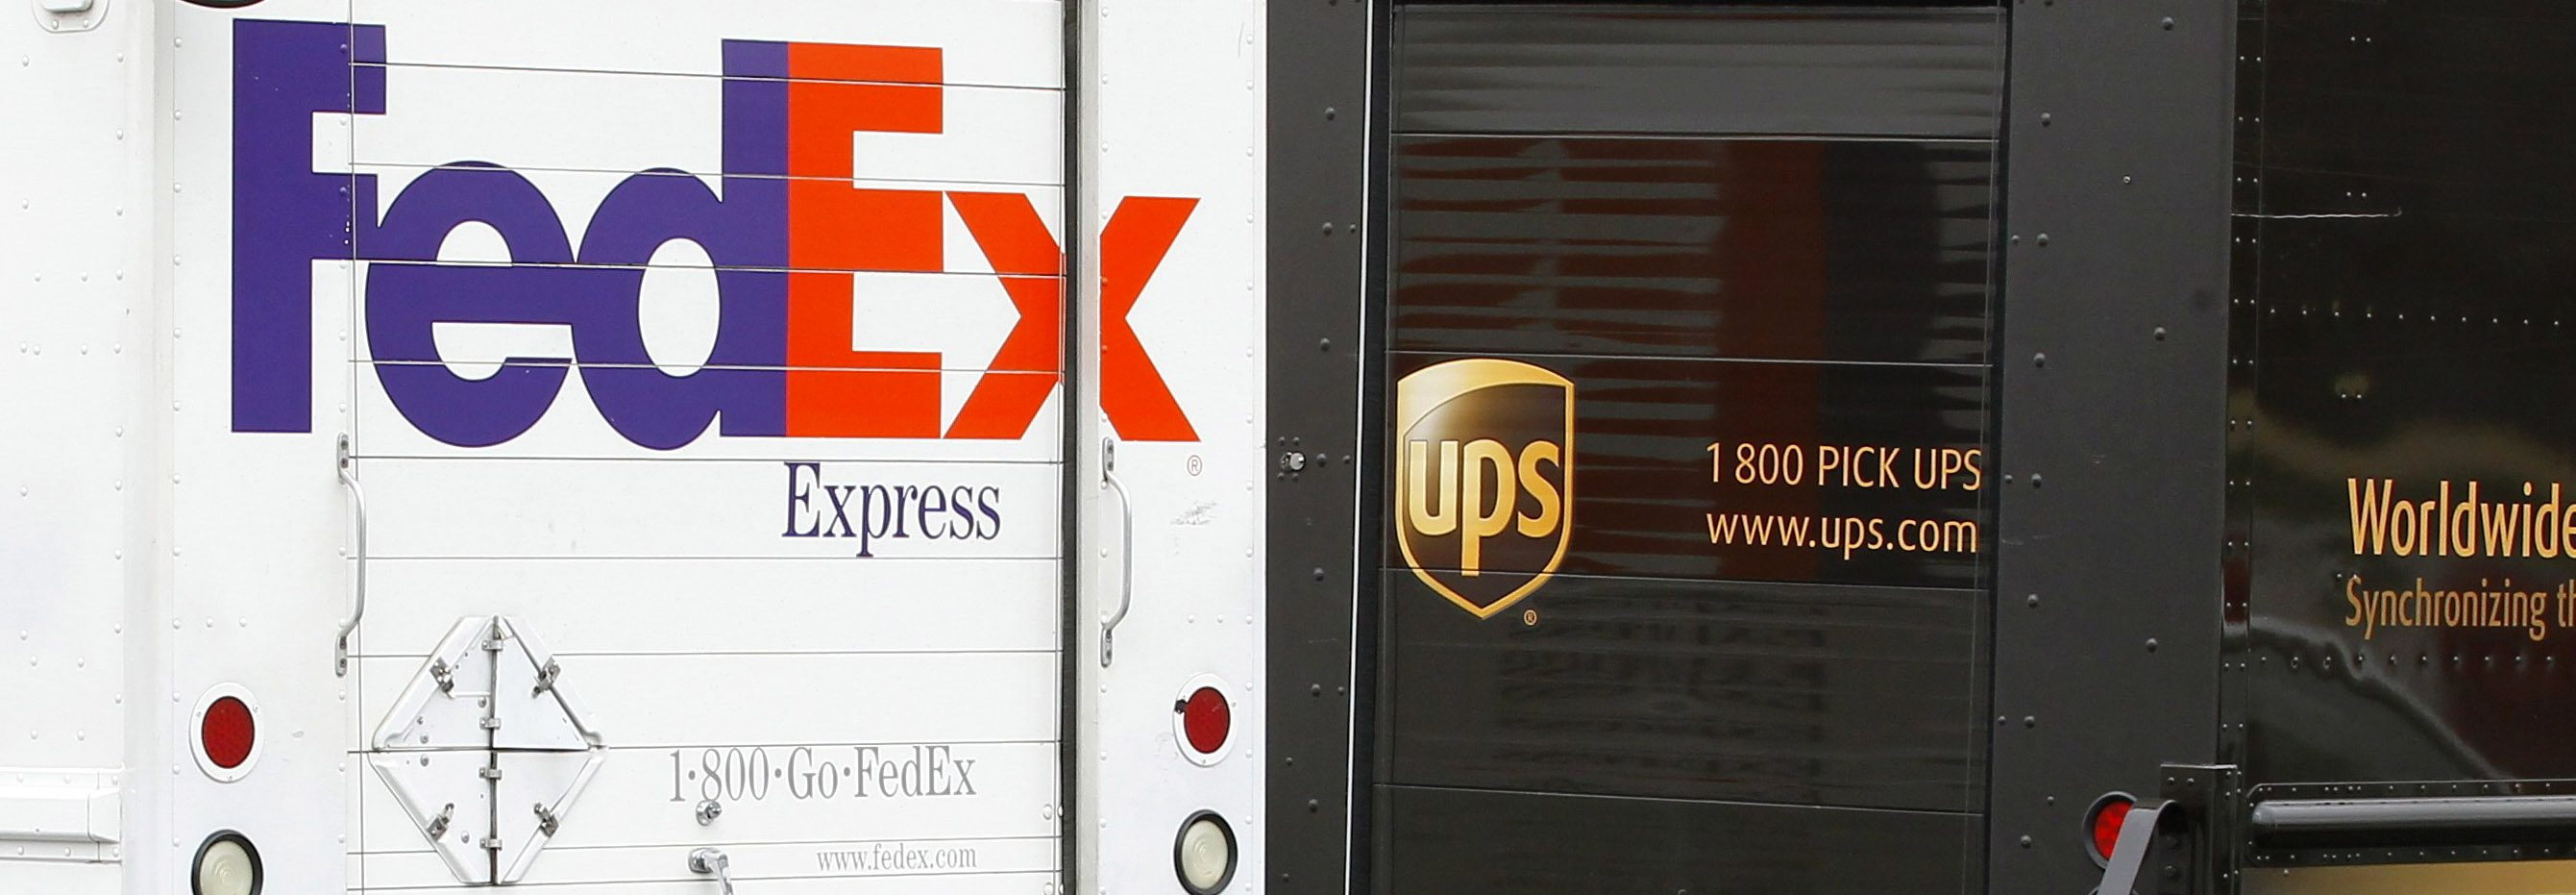 Why Should You Audit Your FedEx and UPS Invoices In 2019?